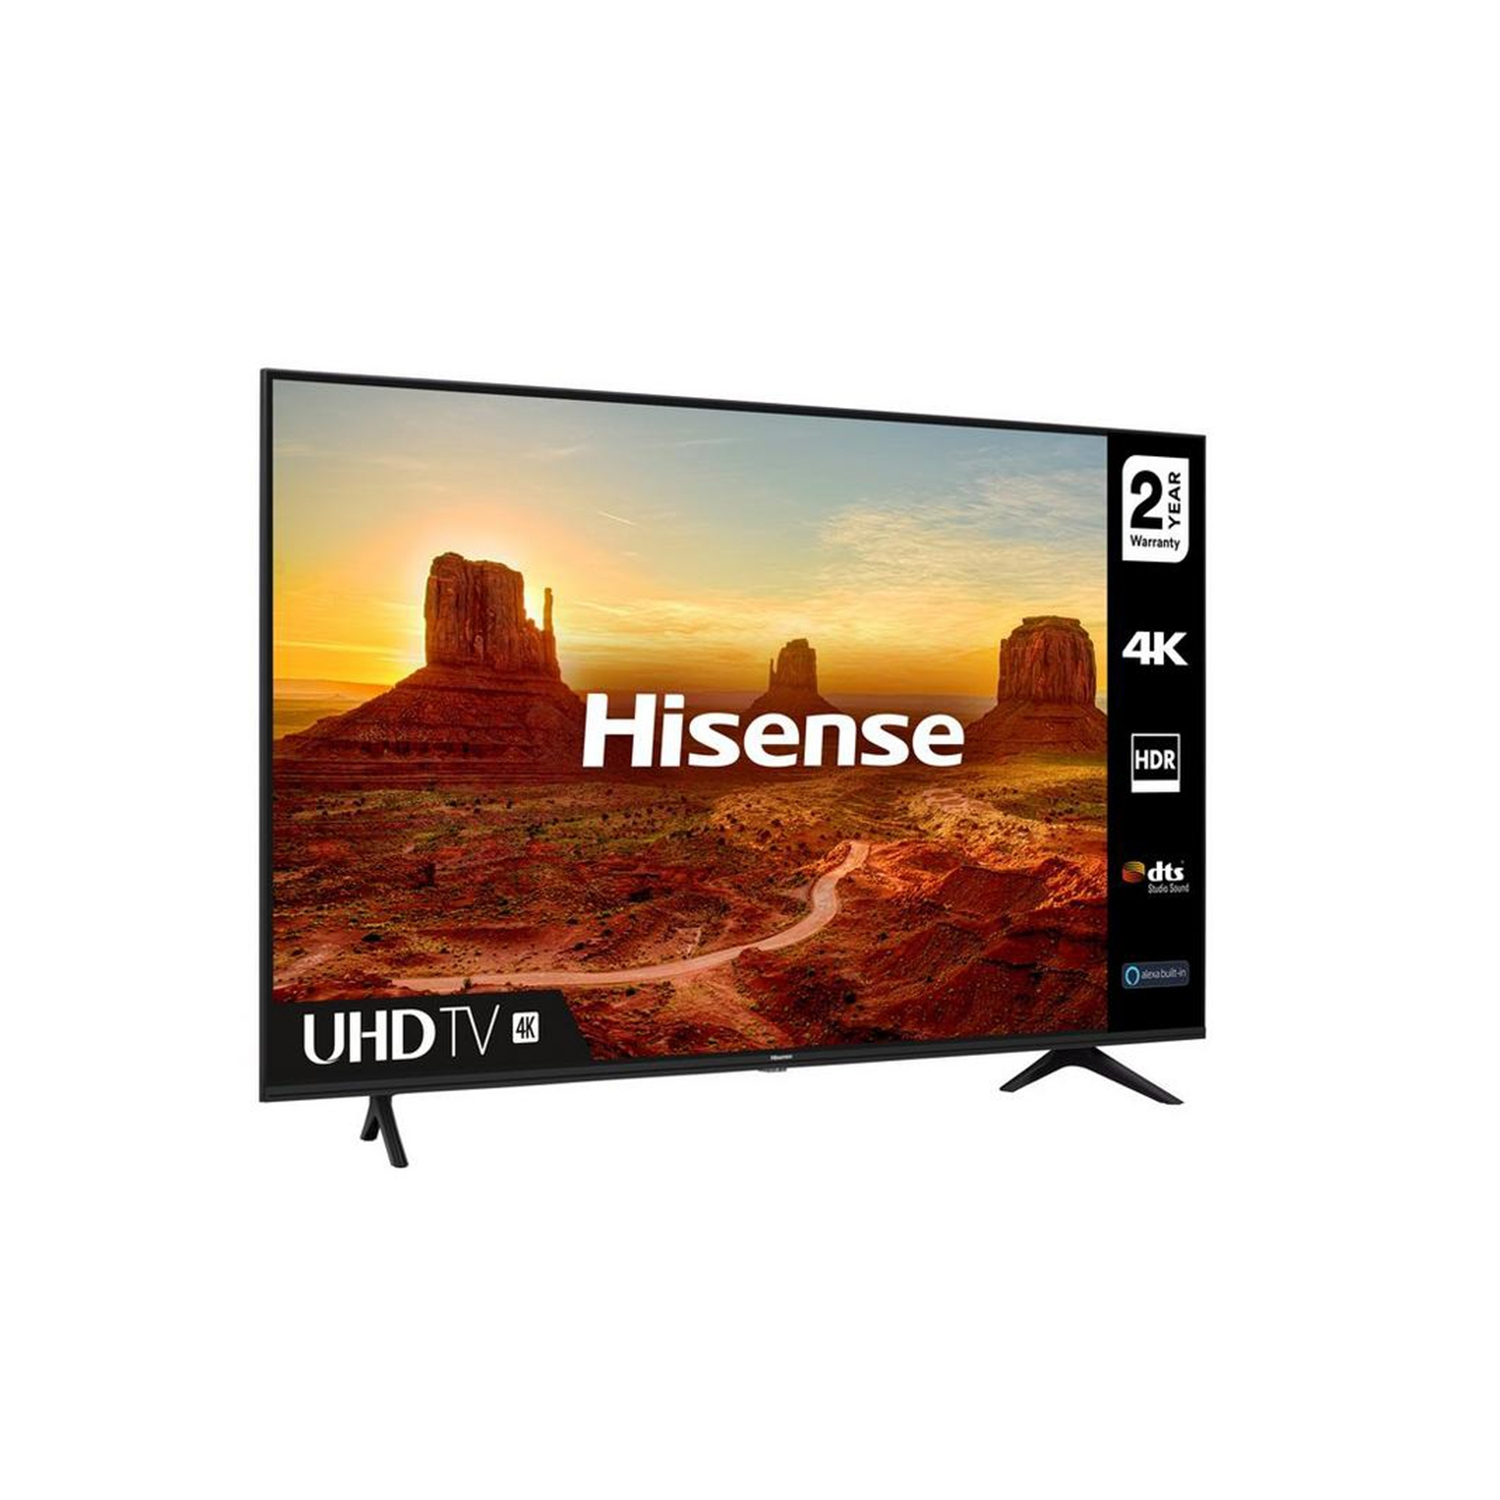 "Hisense 50"" 4K UHD Smart TV - A+ Energy Rated - 0"